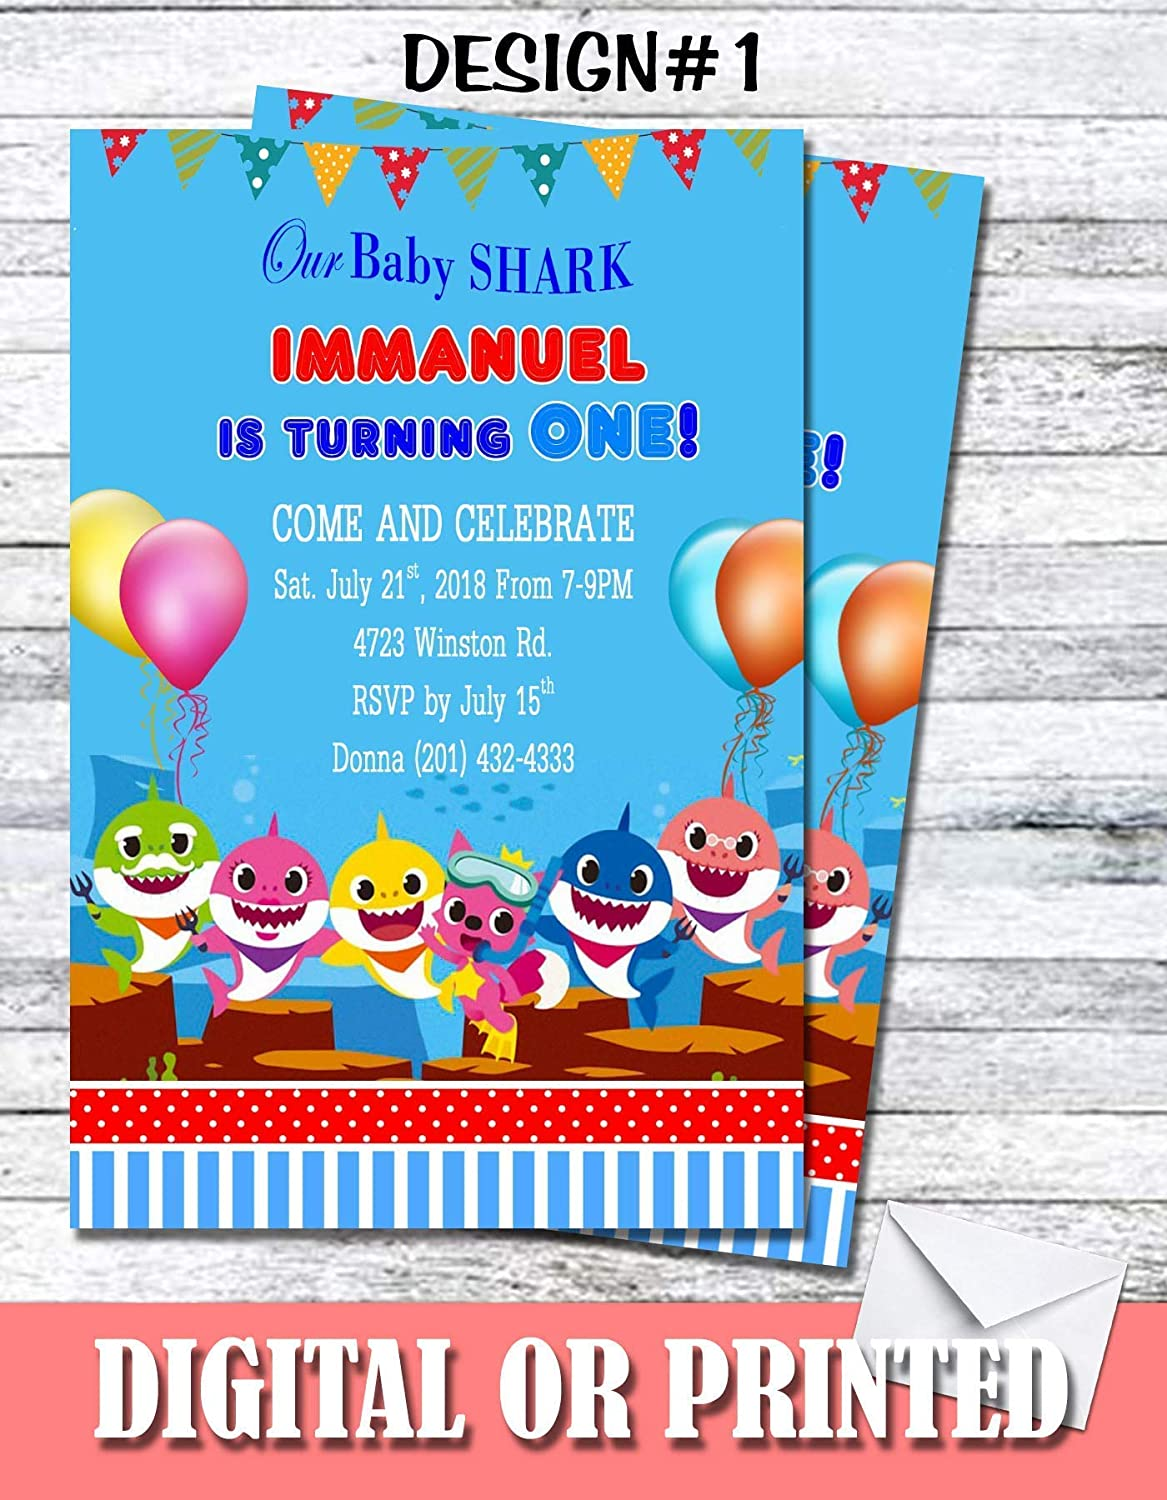 Baby Shark Girl Boy Personalized Birthday Invitations More Designs Inside!